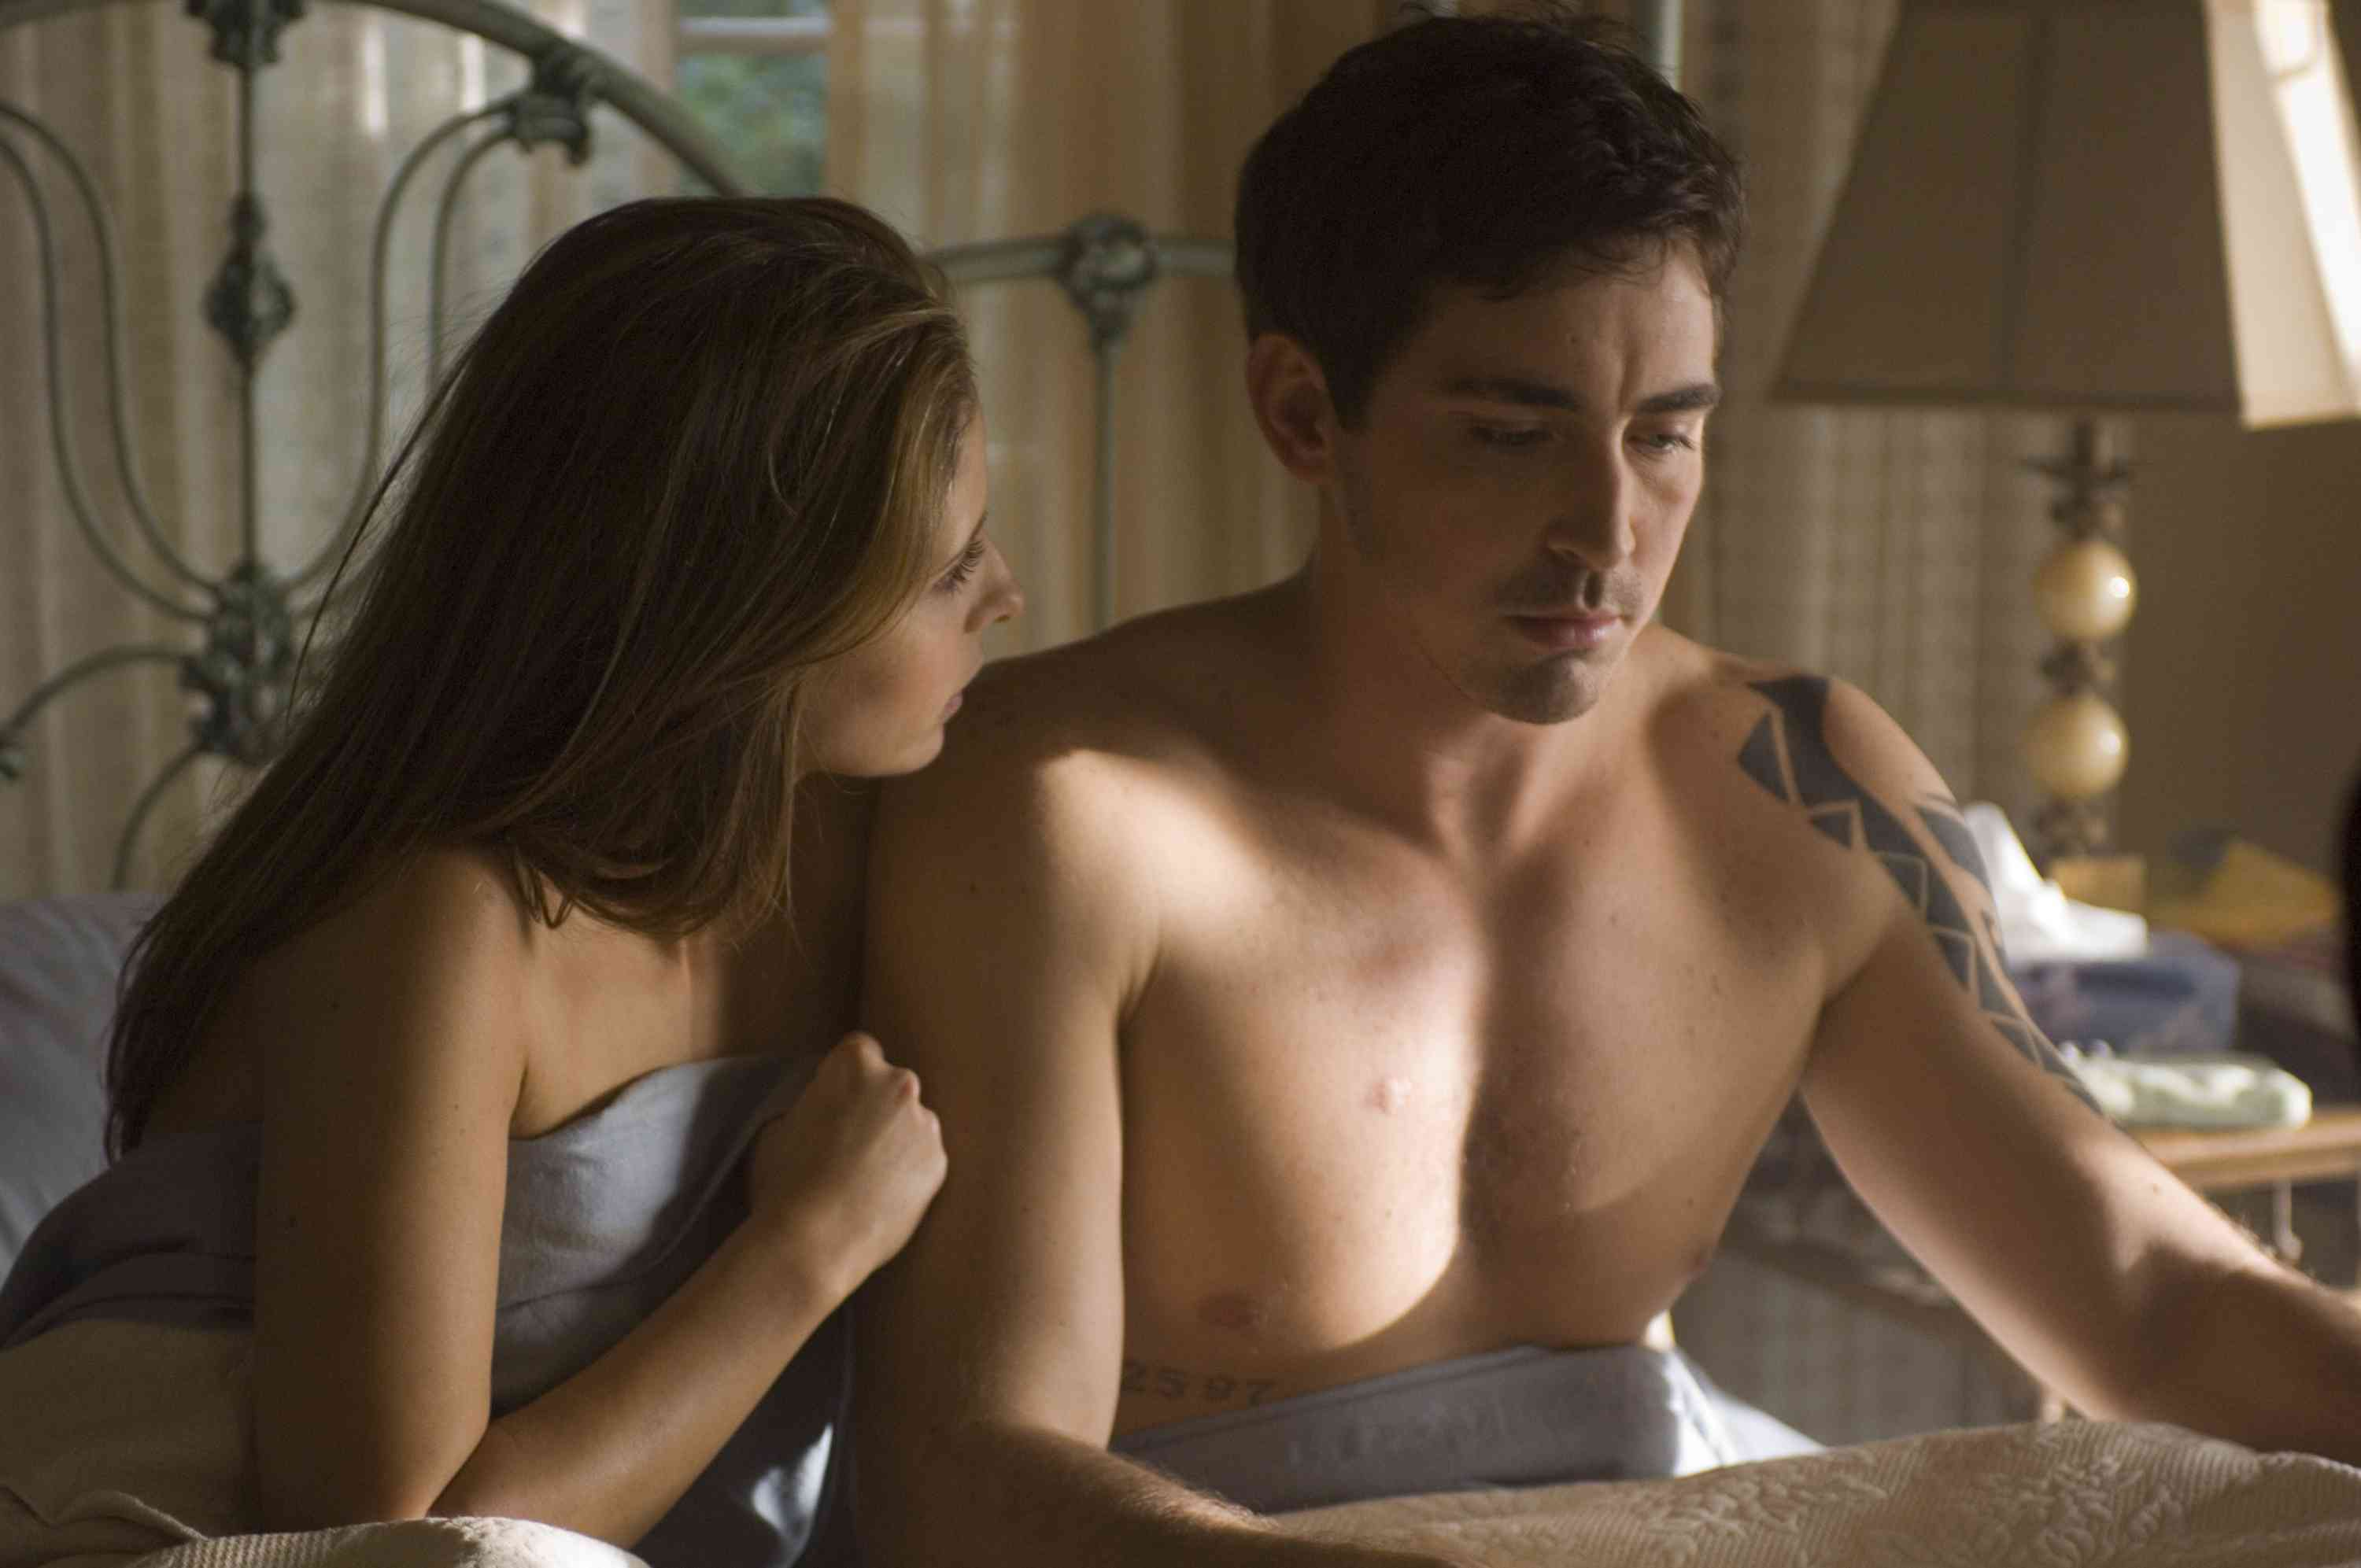 The beautiful Lee Pace in bed with Sarah Michelle Geller